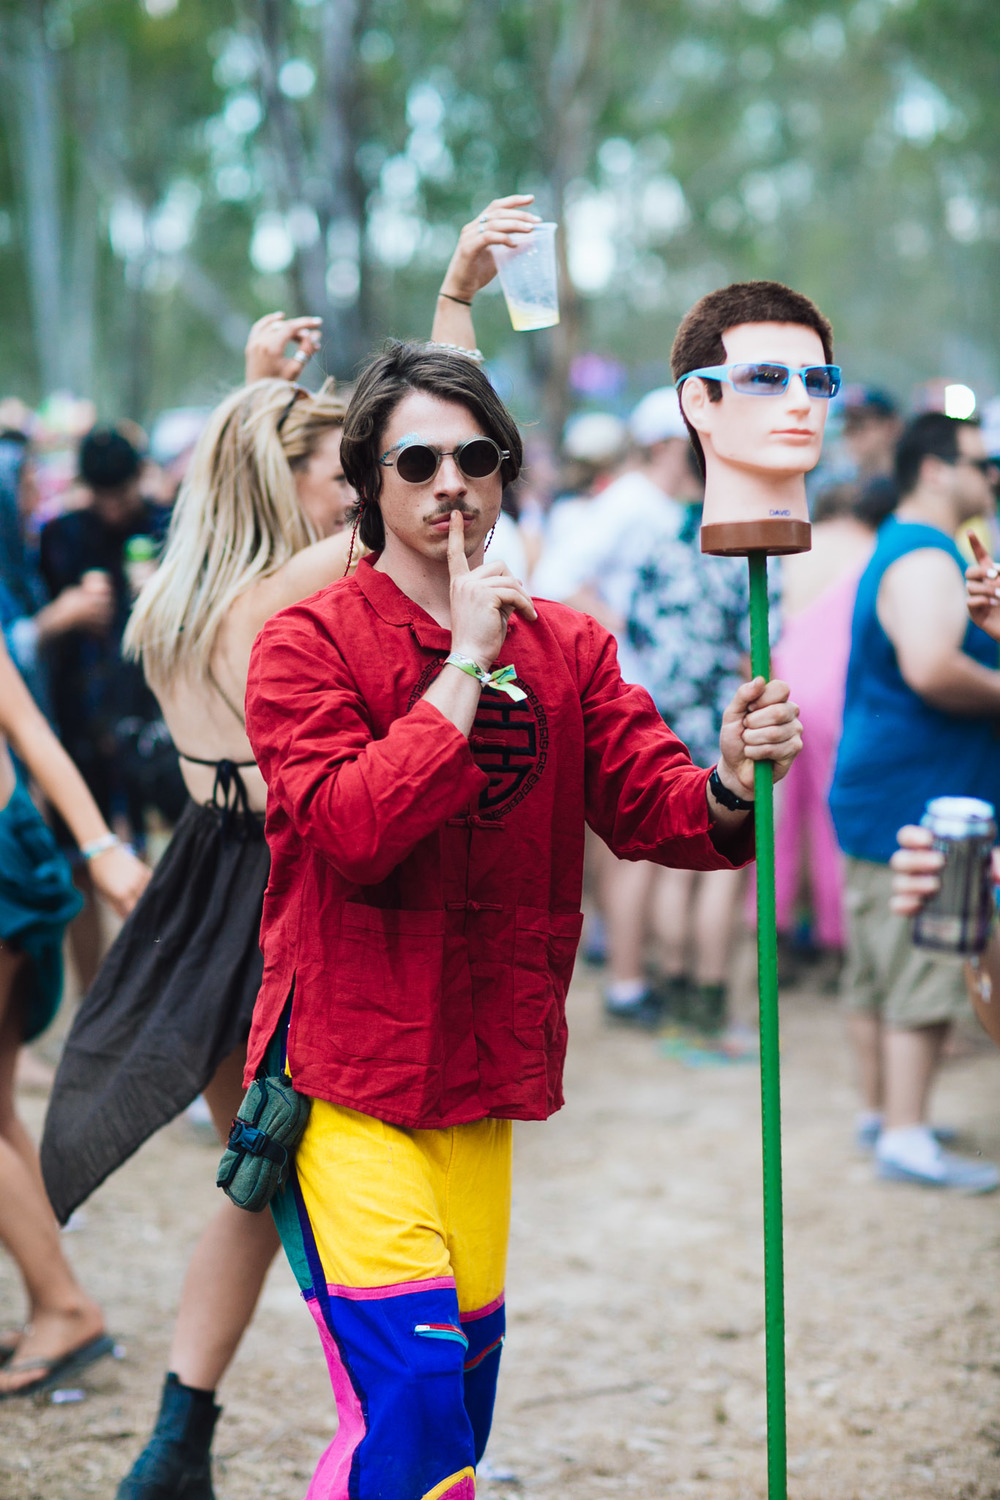 VOENA_STRAWBERRY_FIELDS_FESTIVAL_AUSTRALIA_2015_PHOTOS-36.jpg